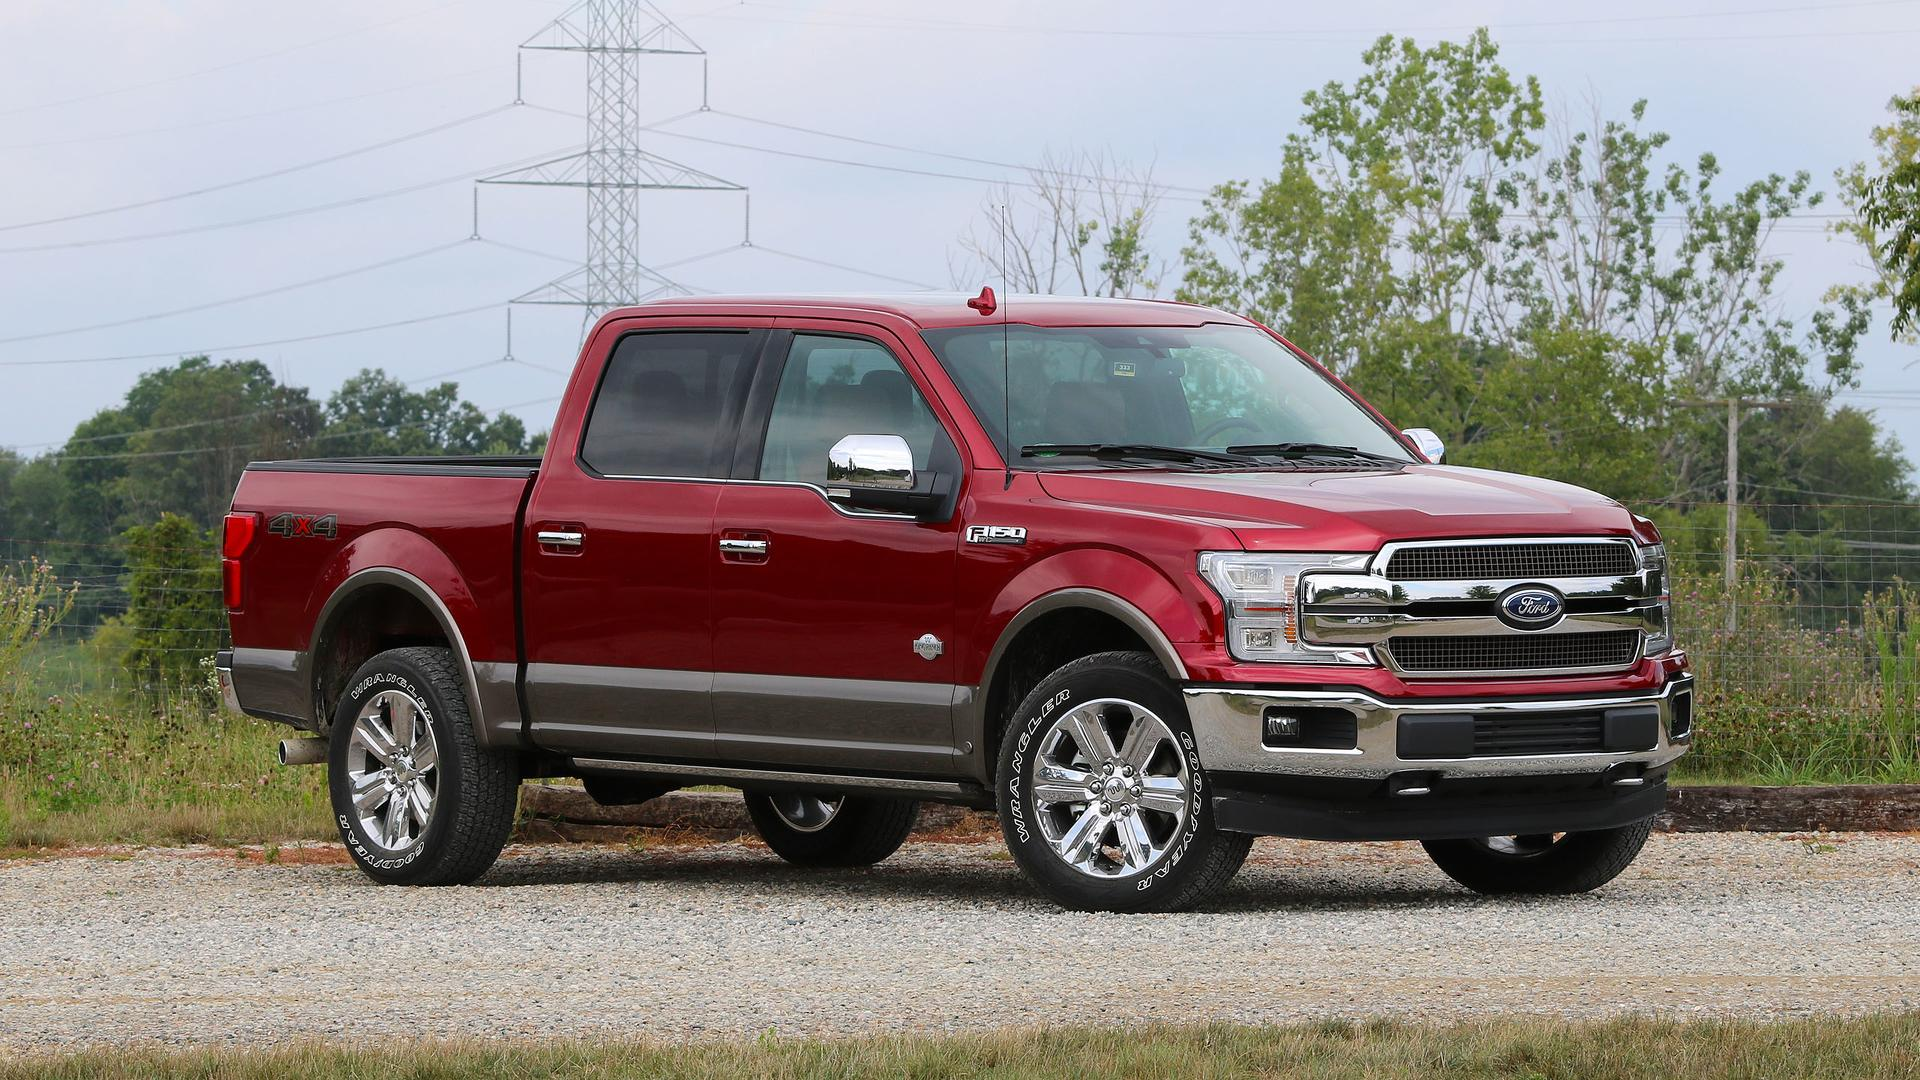 Ford Ranger 150 >> 2018 Ford F-150 First Drive: The Same, But Even Better